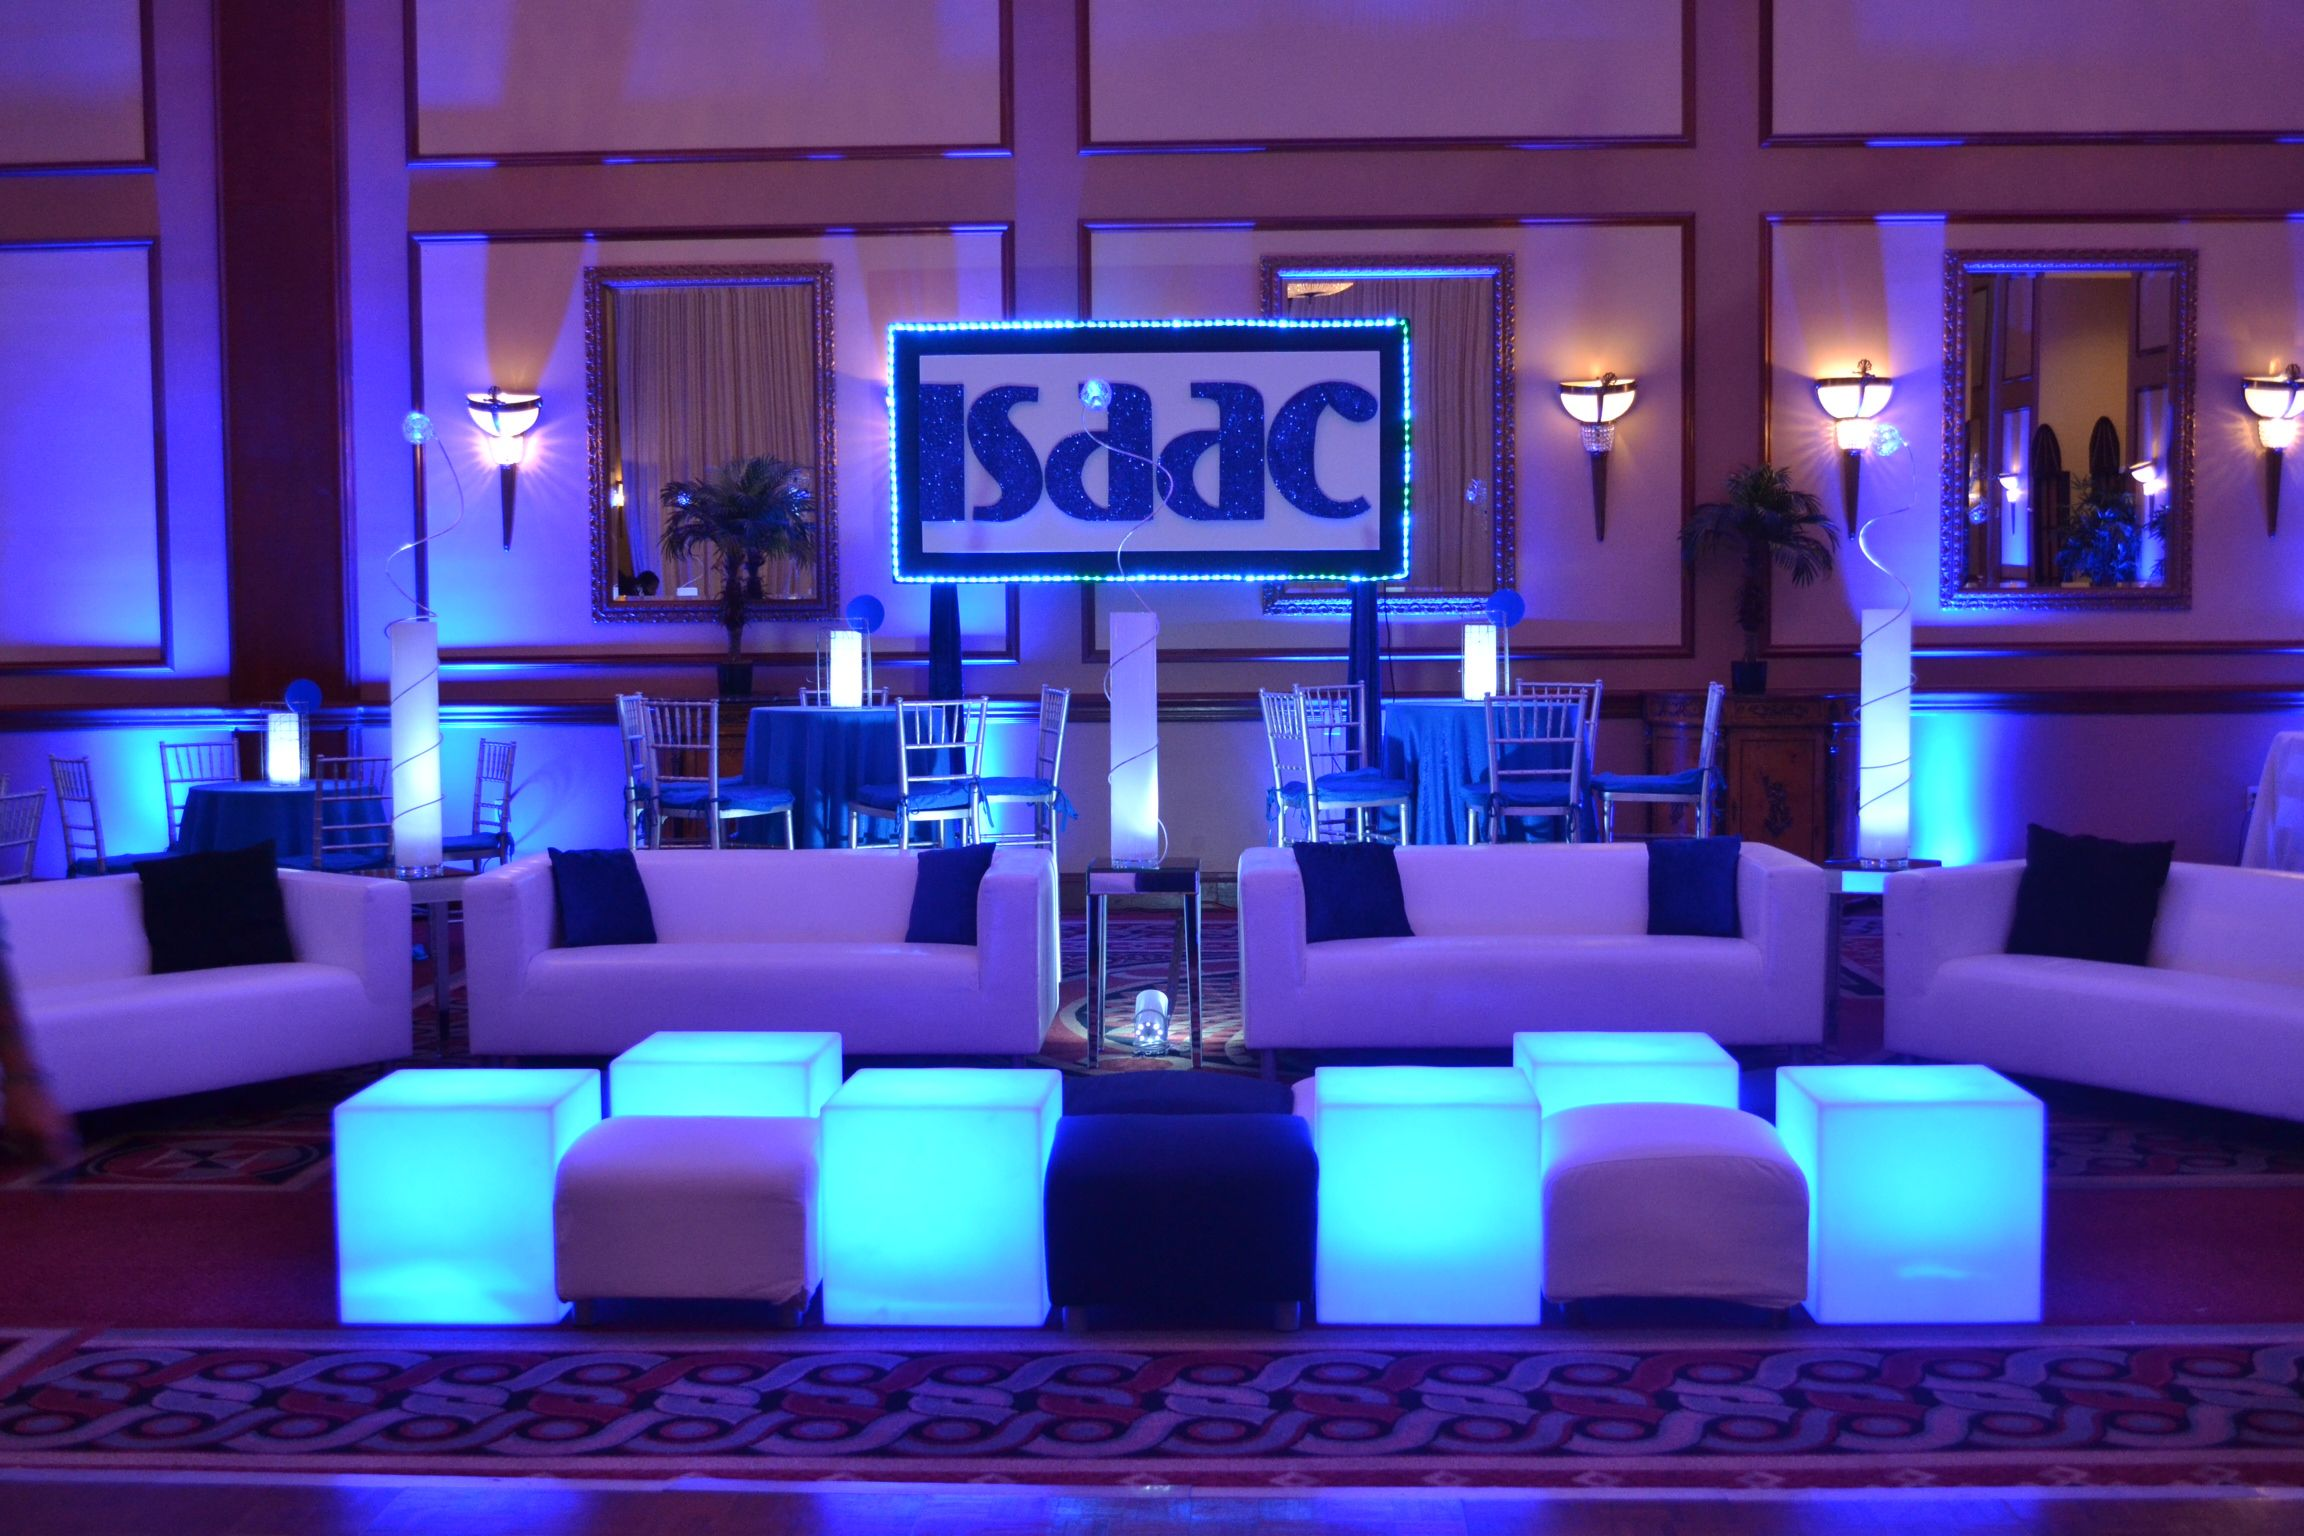 Bar Mitzvah Event Decor Blue Color Scheme Glowing Sculpture Centerpieces  Party Perfect Boca Raton, FL